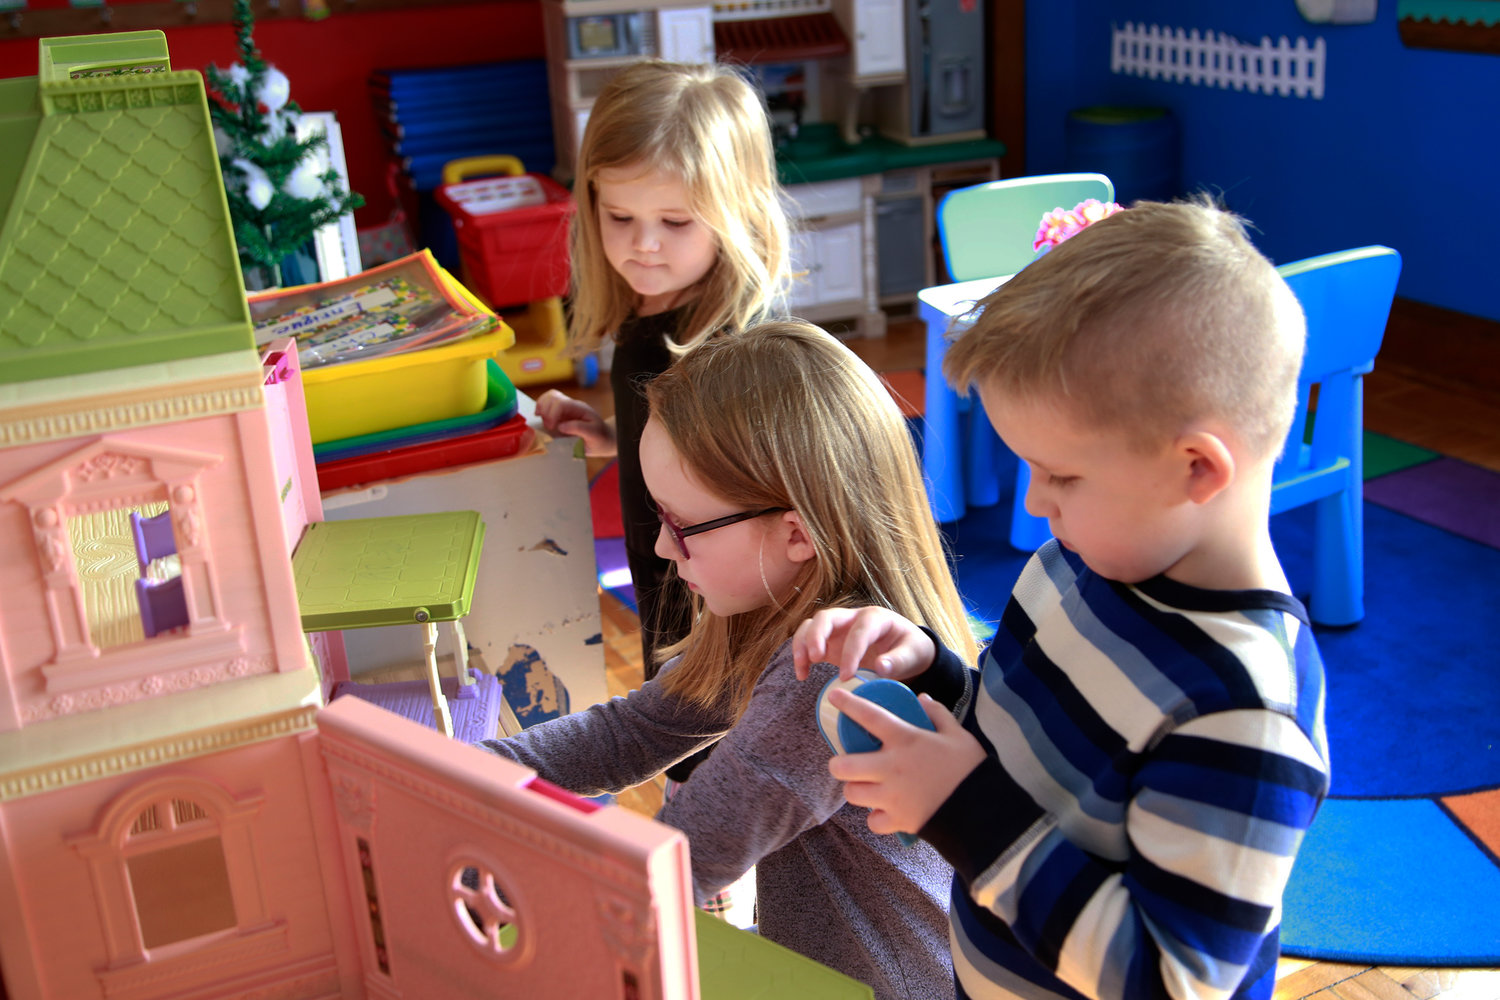 Catherine Campbell, 8, left, with her siblings Emma and Daniel, both 5, played in the pre-kindergarten classroom.